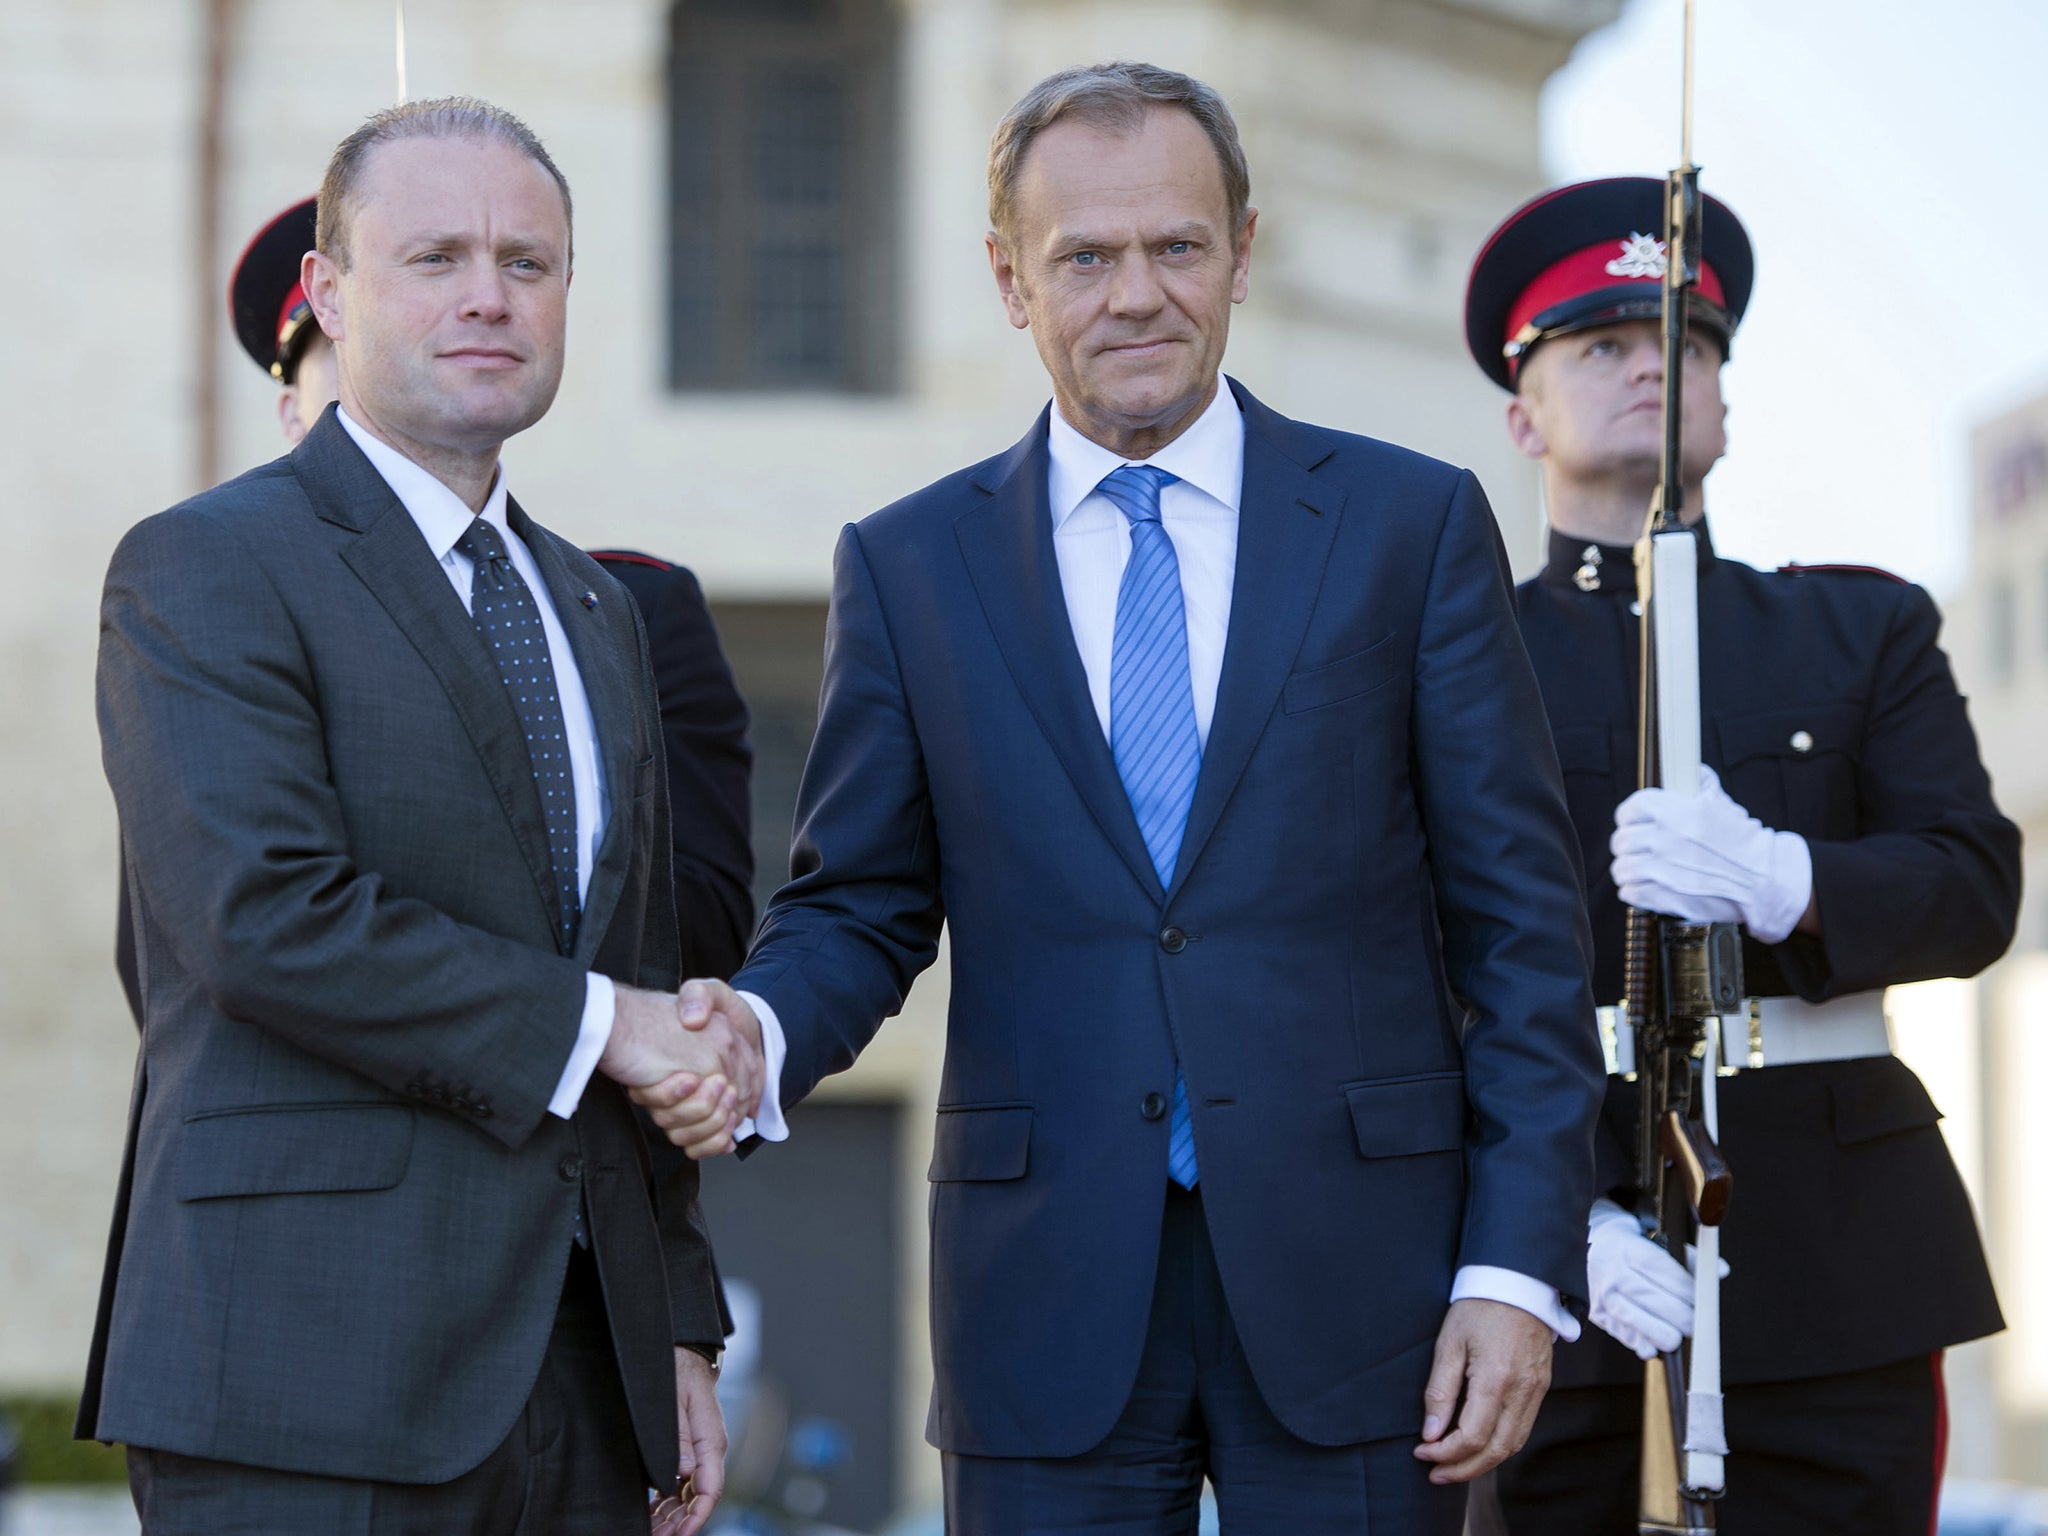 Maltese prime minister: For the first time, I'm starting to believe Brexit won't happen